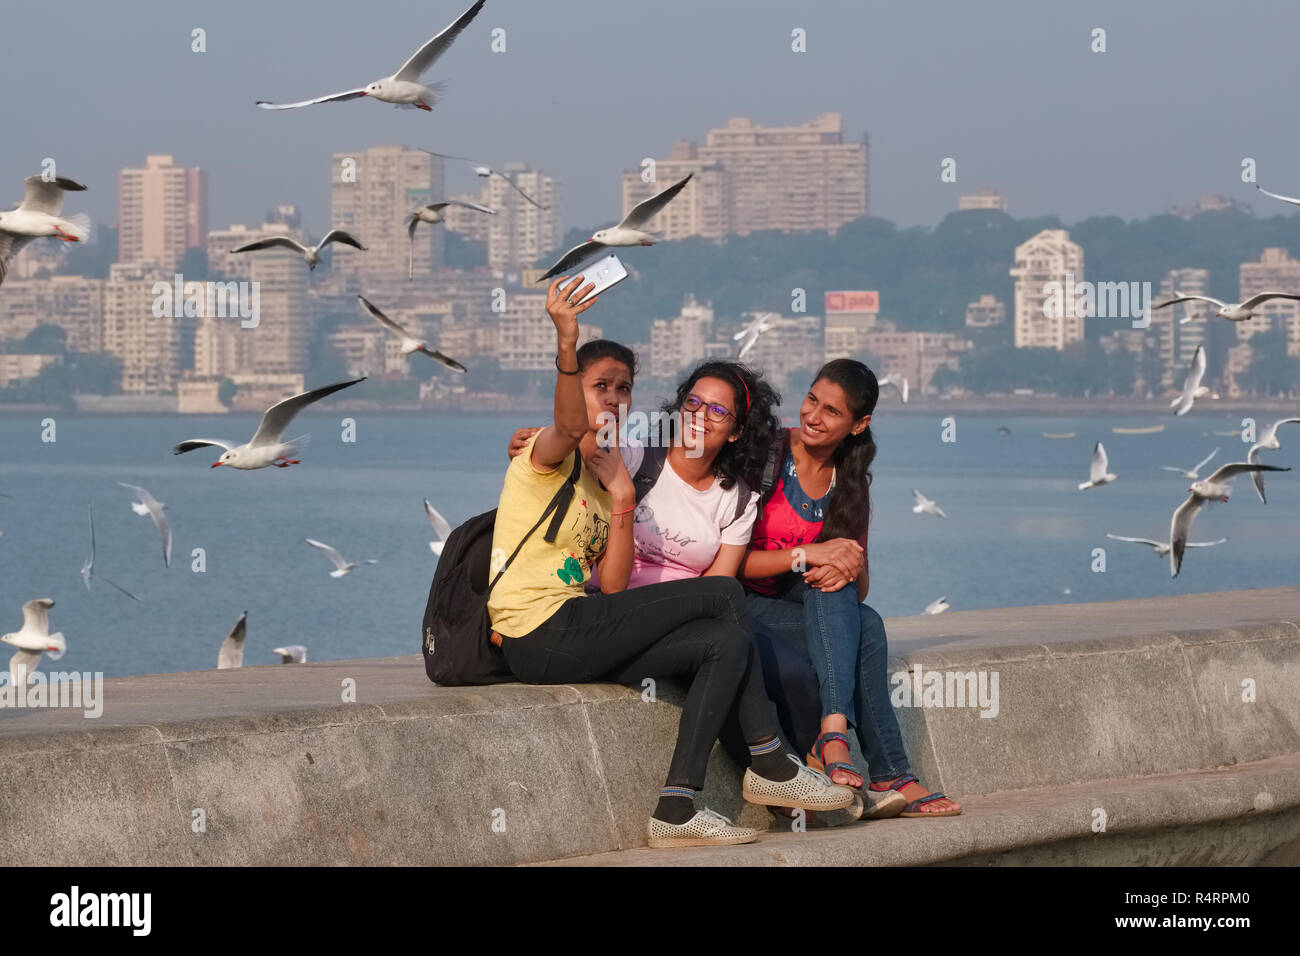 Visitors at Marine Drive, a boulevard by the Arabian Sea in Mumbai, India, taking selfies with migratory seagulls flown in for the winter months - Stock Image